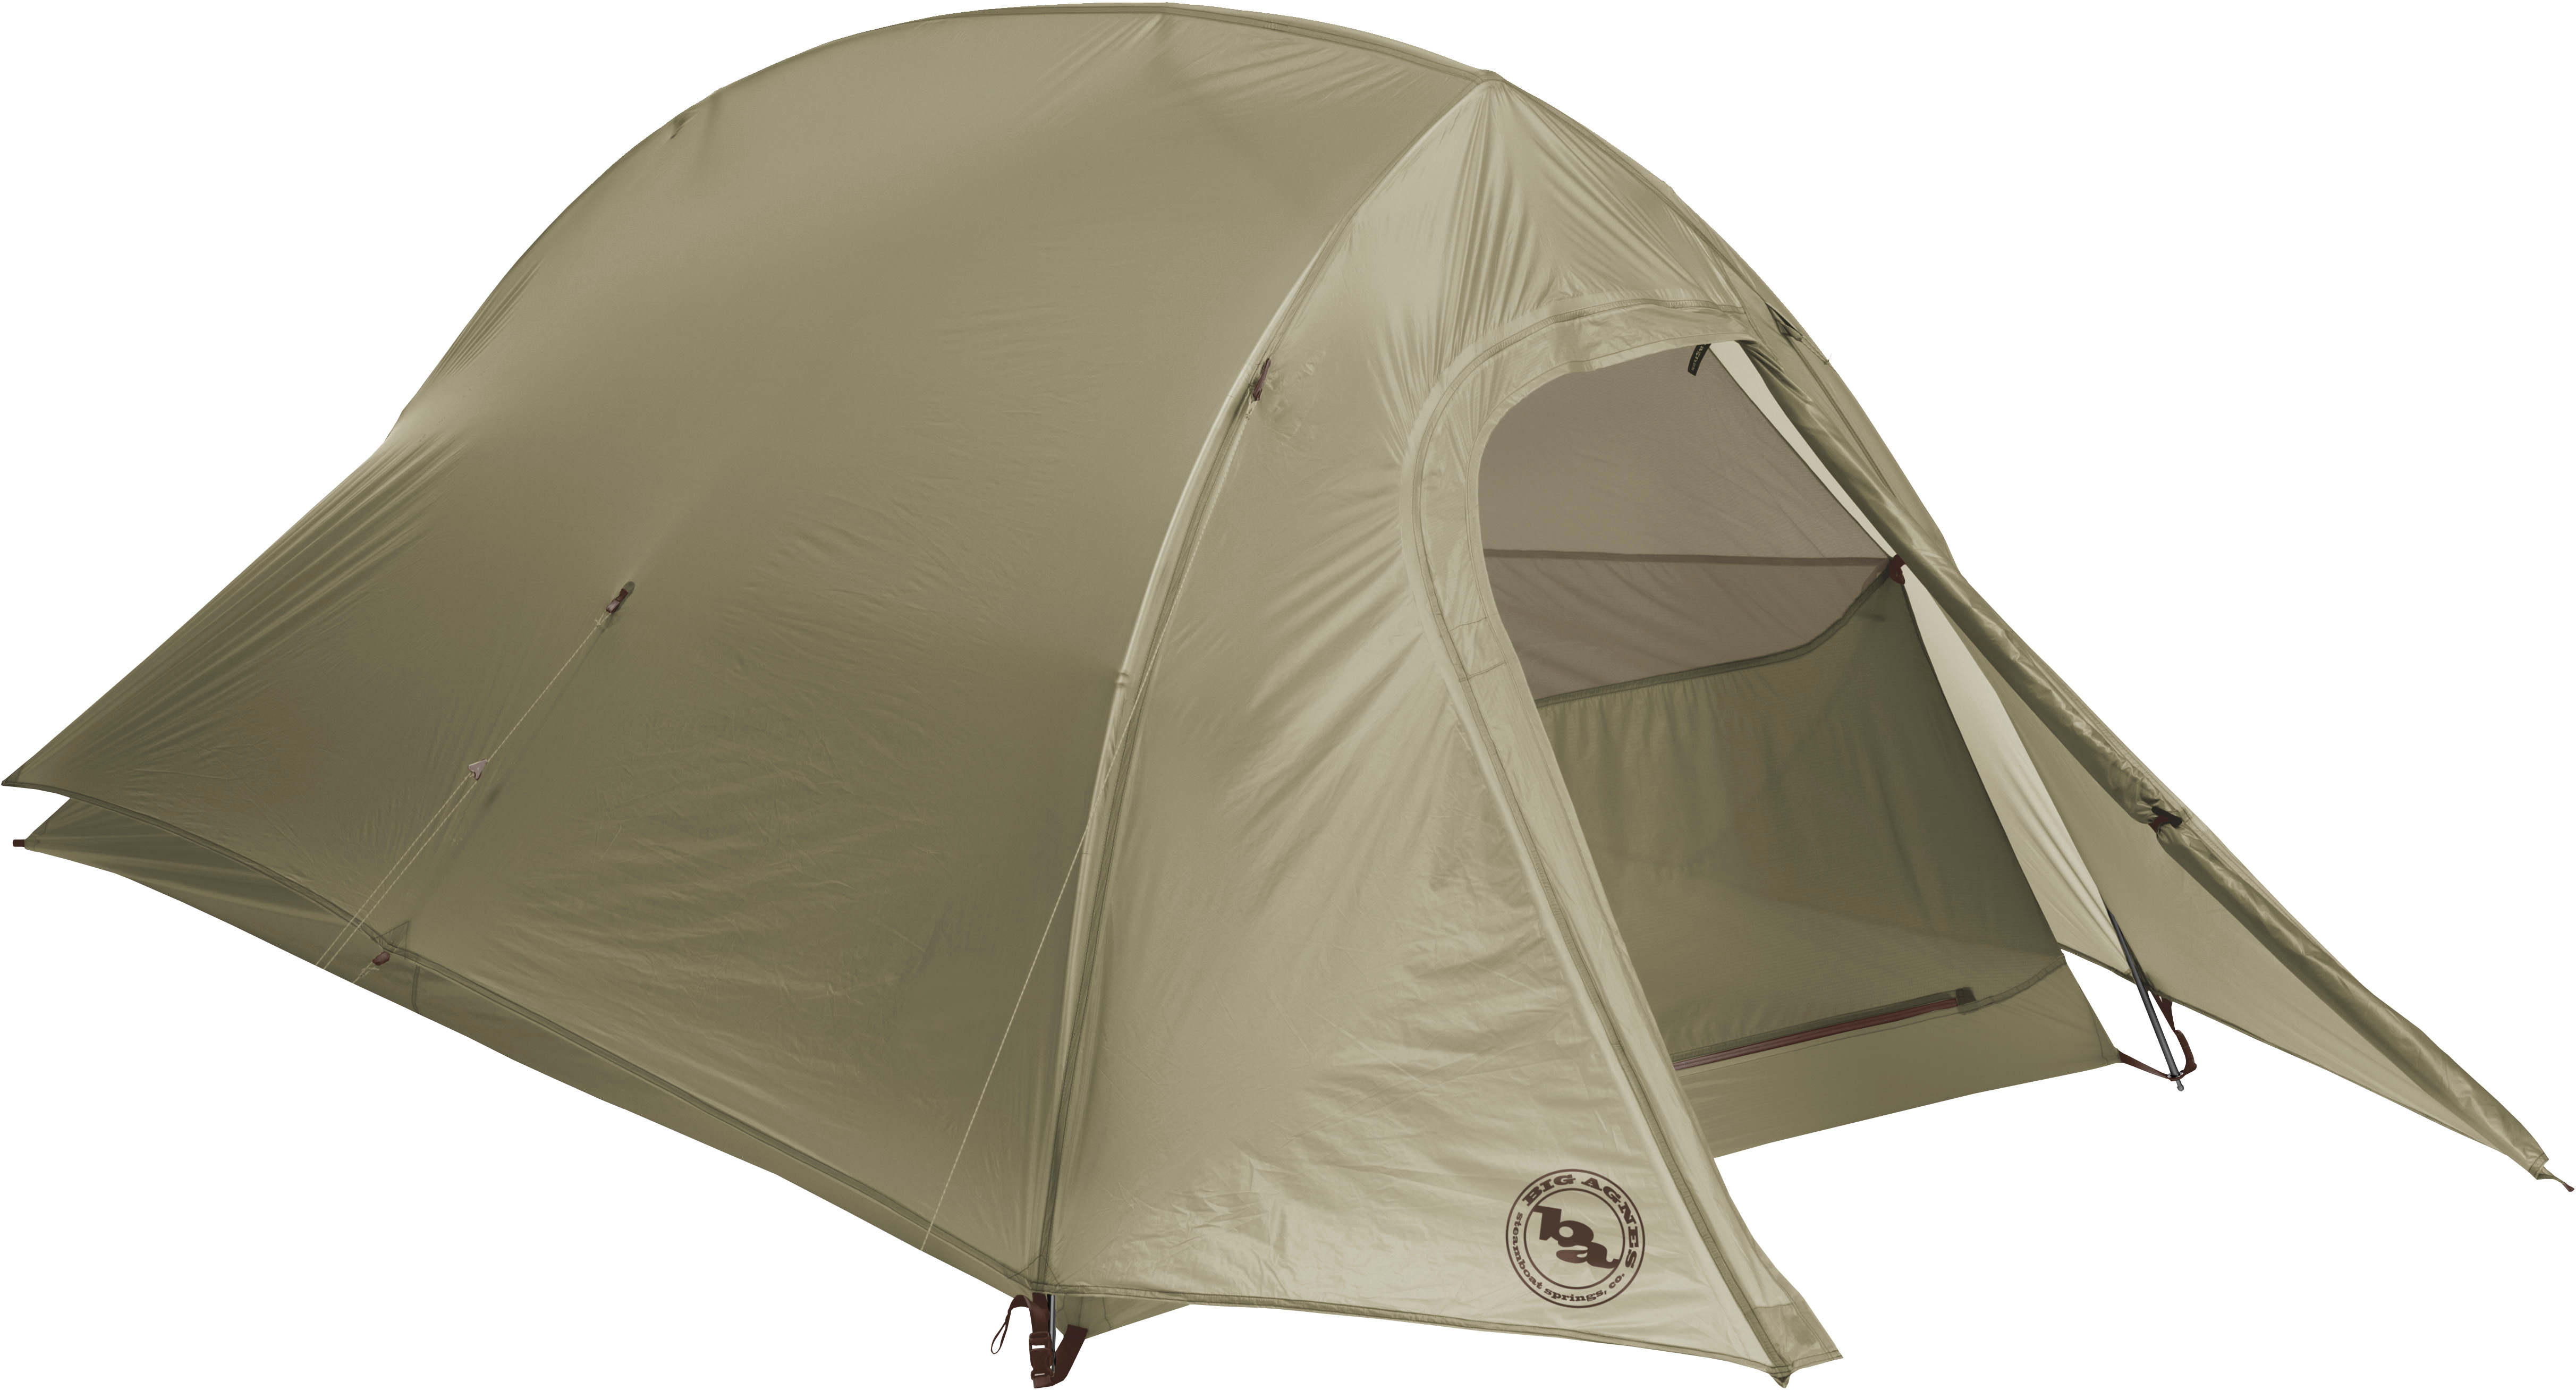 90f9843901 Big Agnes Fly Creek HV UL 2 Tent - 2 Person, 3 Season THVFLYG216, Tent  Type: Backpacking, Doors: 1, Weight: 2.5 lb — Free Two Day Shipping